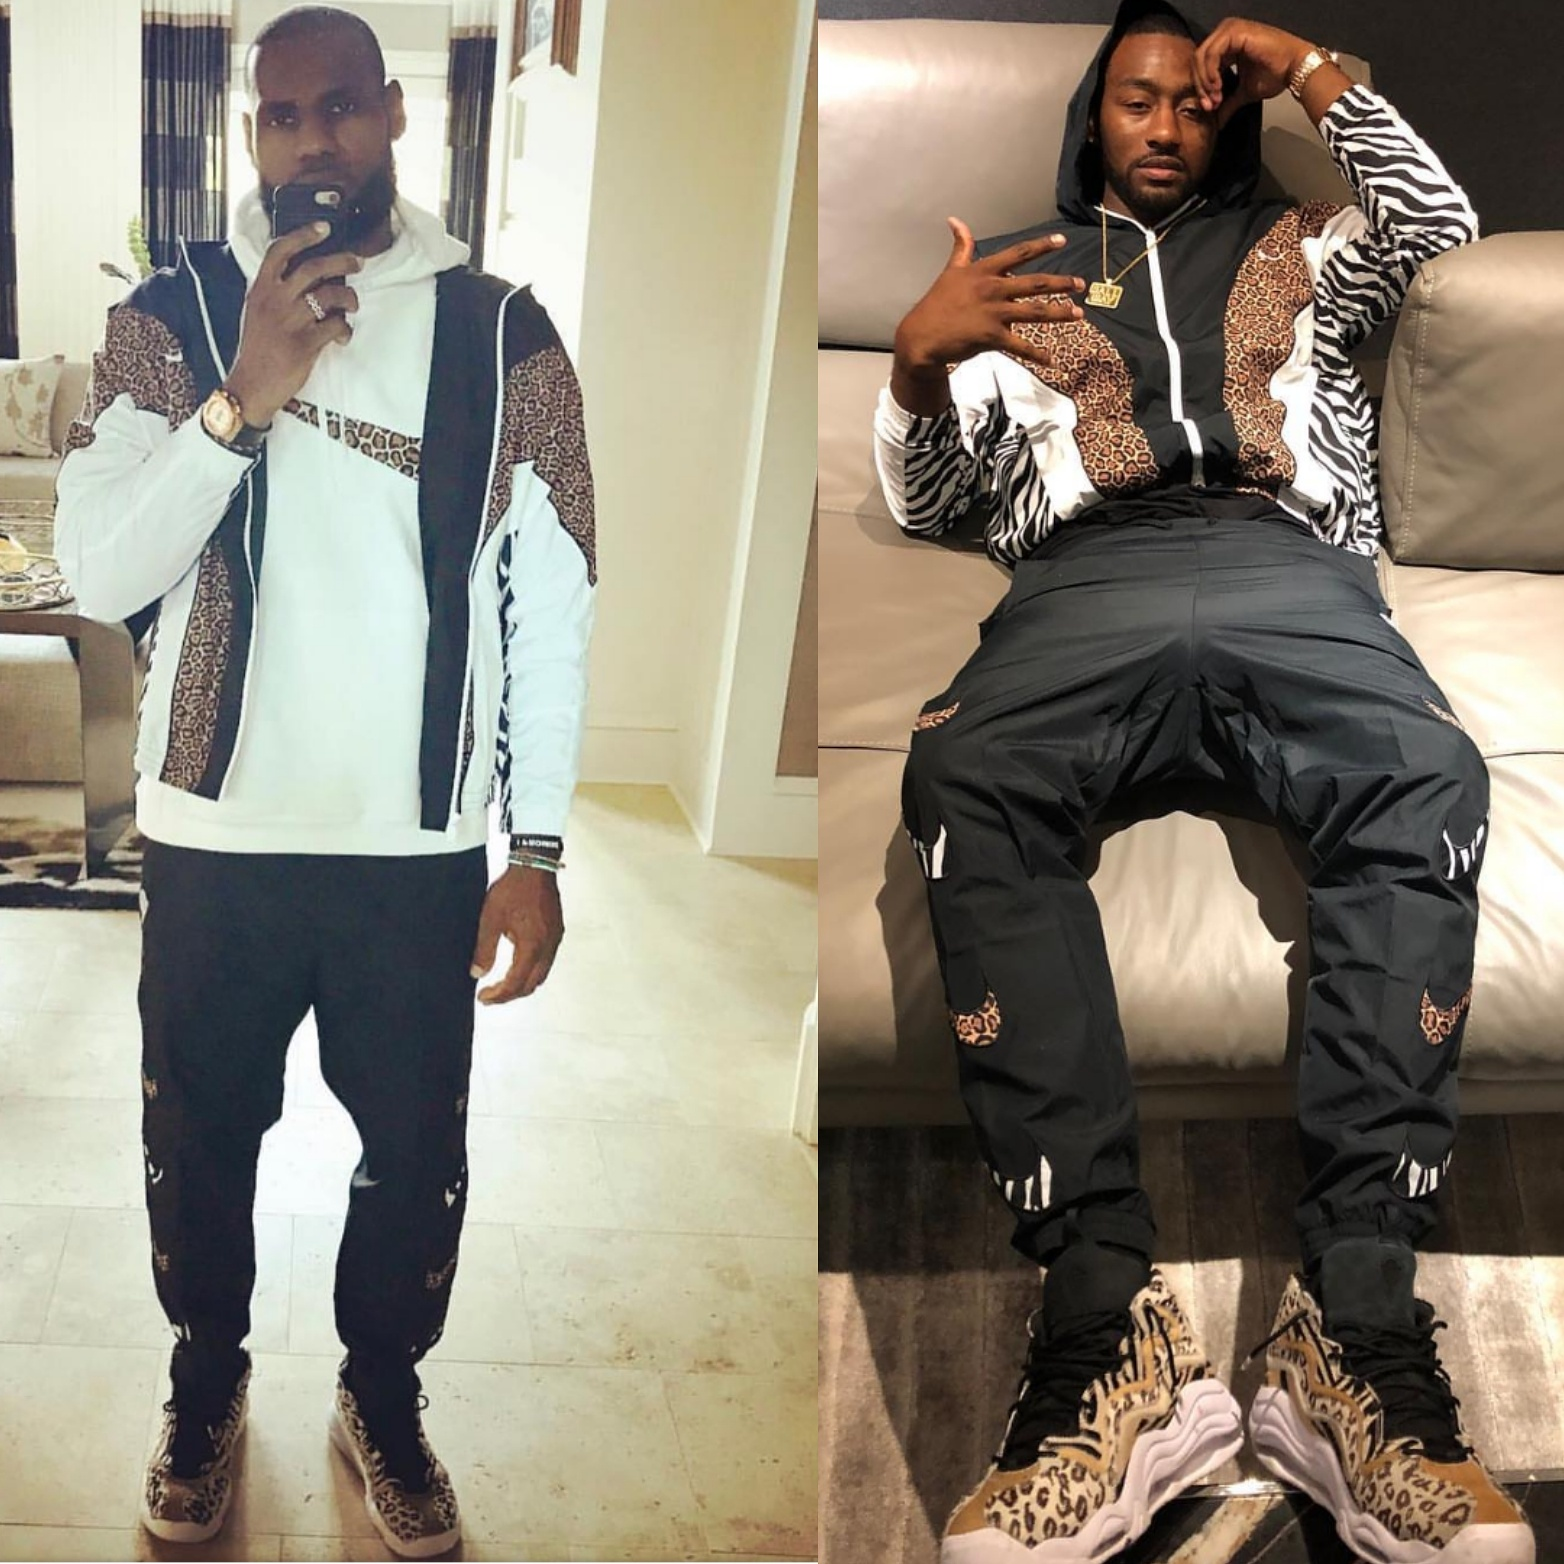 Lebron James VS. John Wall Wearing Kith x Nike Apparel